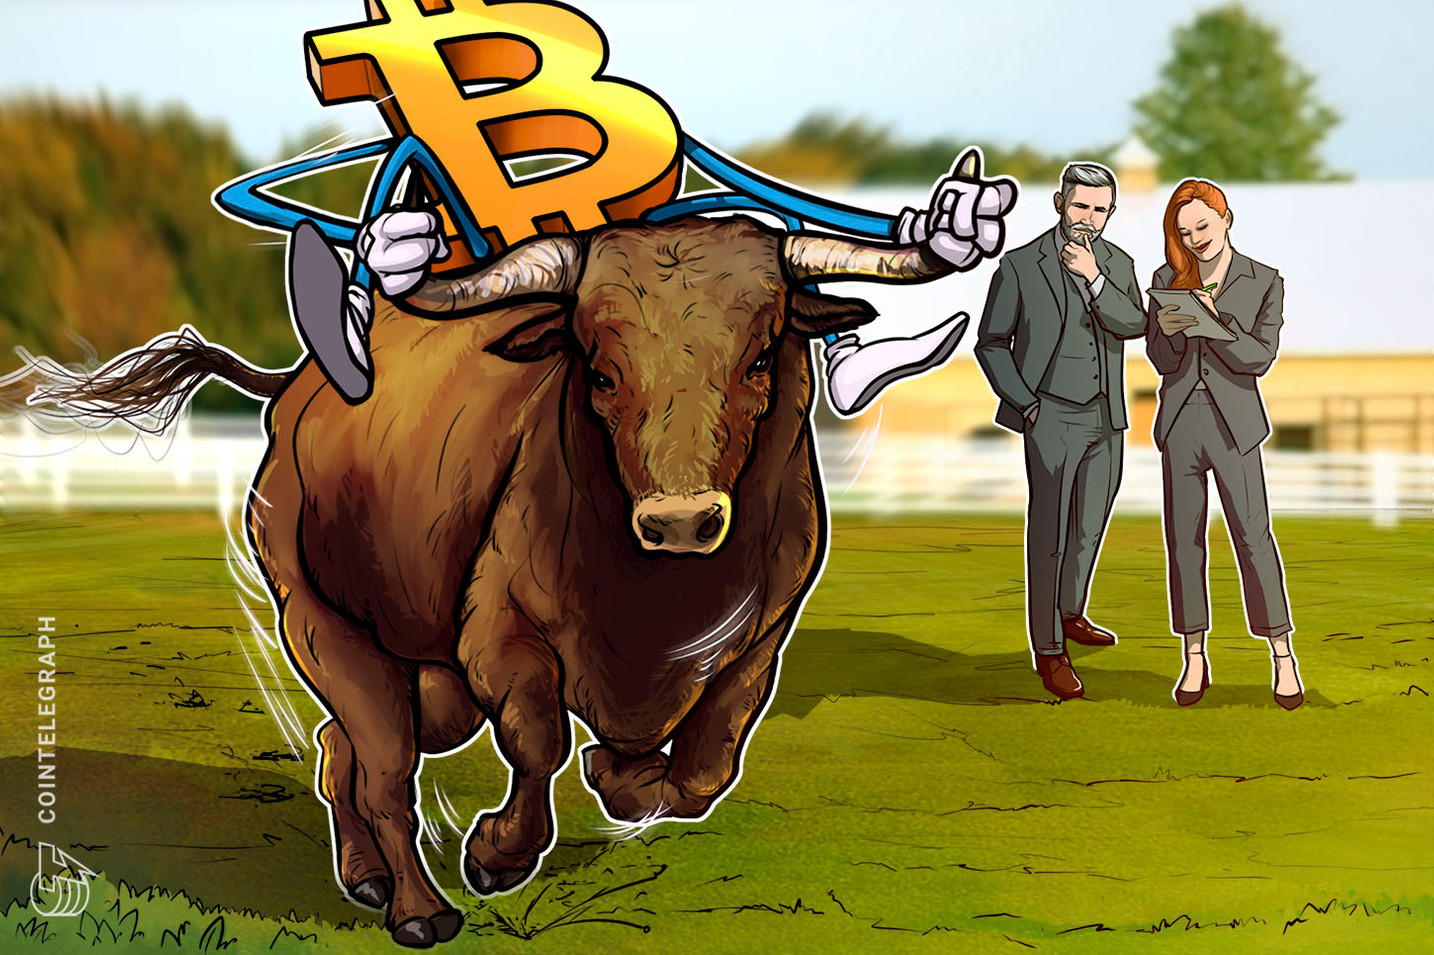 Bitcoin options still bullish despite this week's $900 BTC price drop